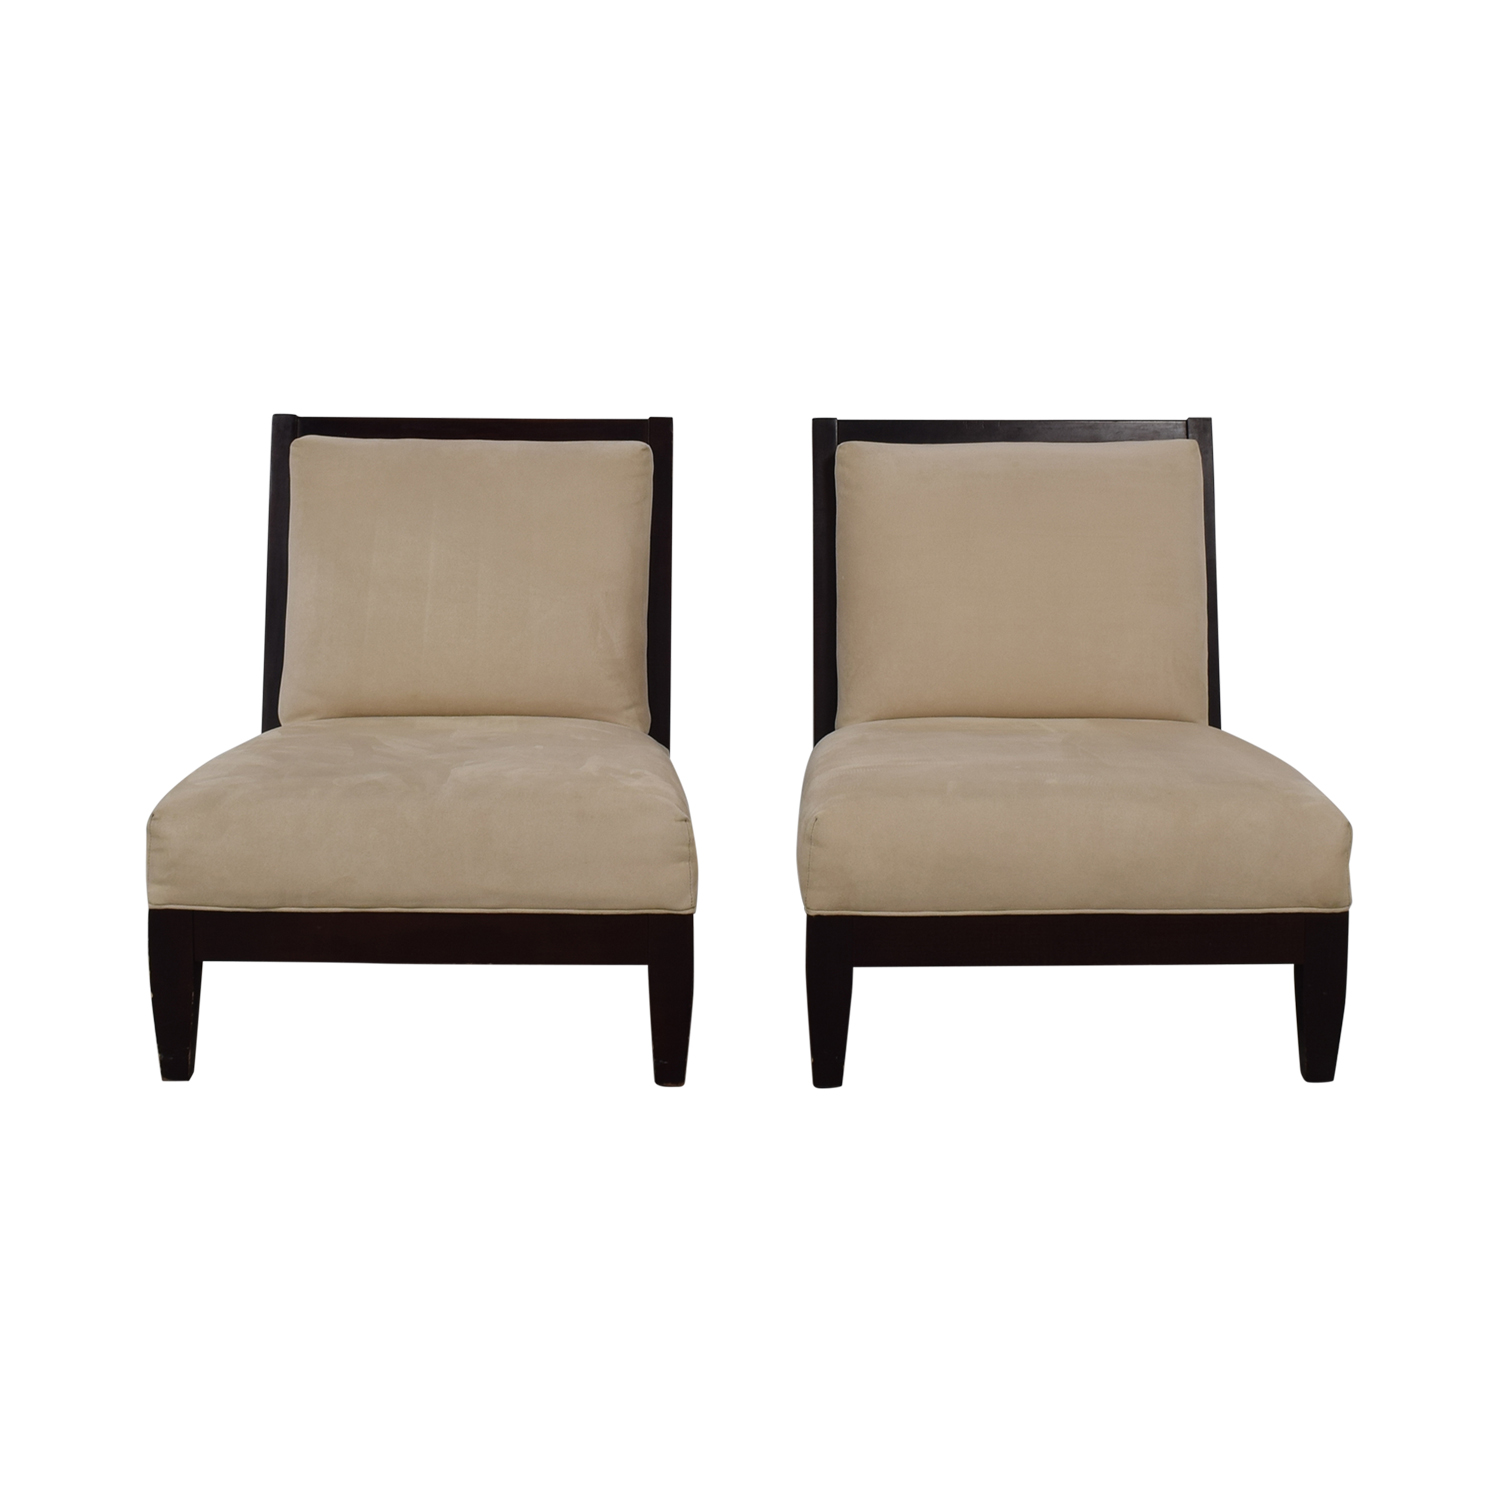 Room & Board Room & Board Beige and Black Accent Chairs second hand